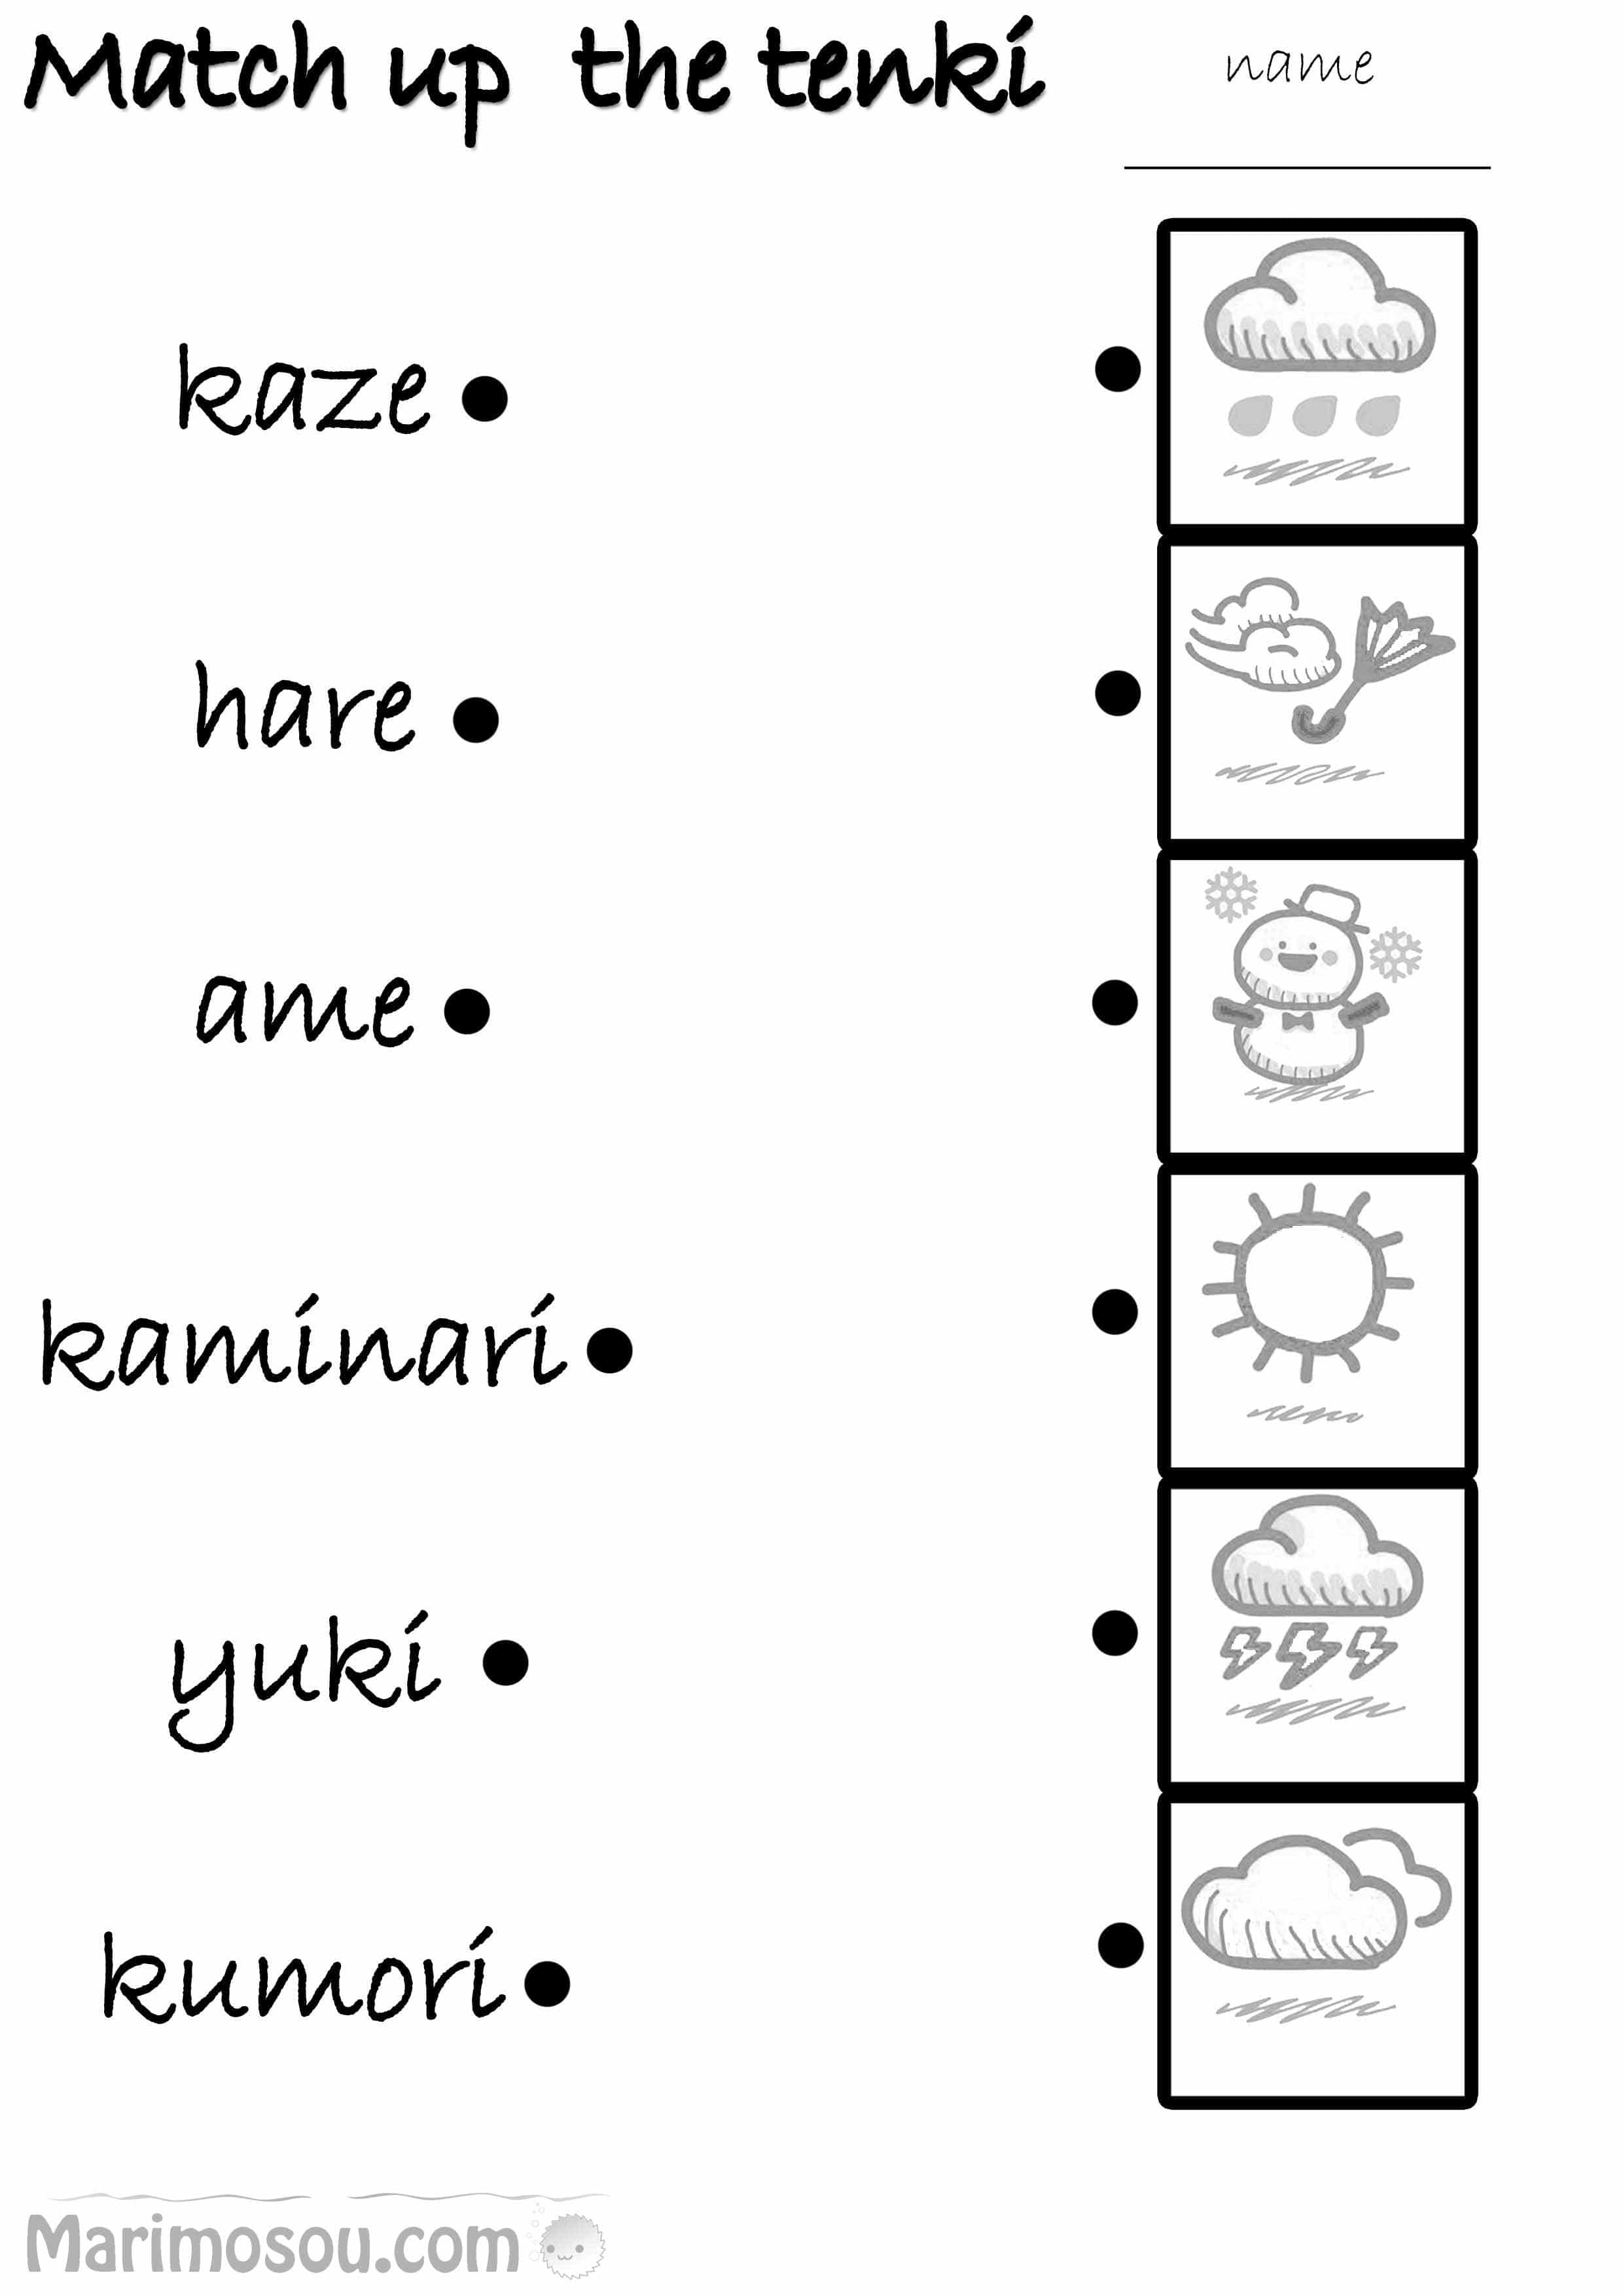 Japanese Worksheets Marimosou